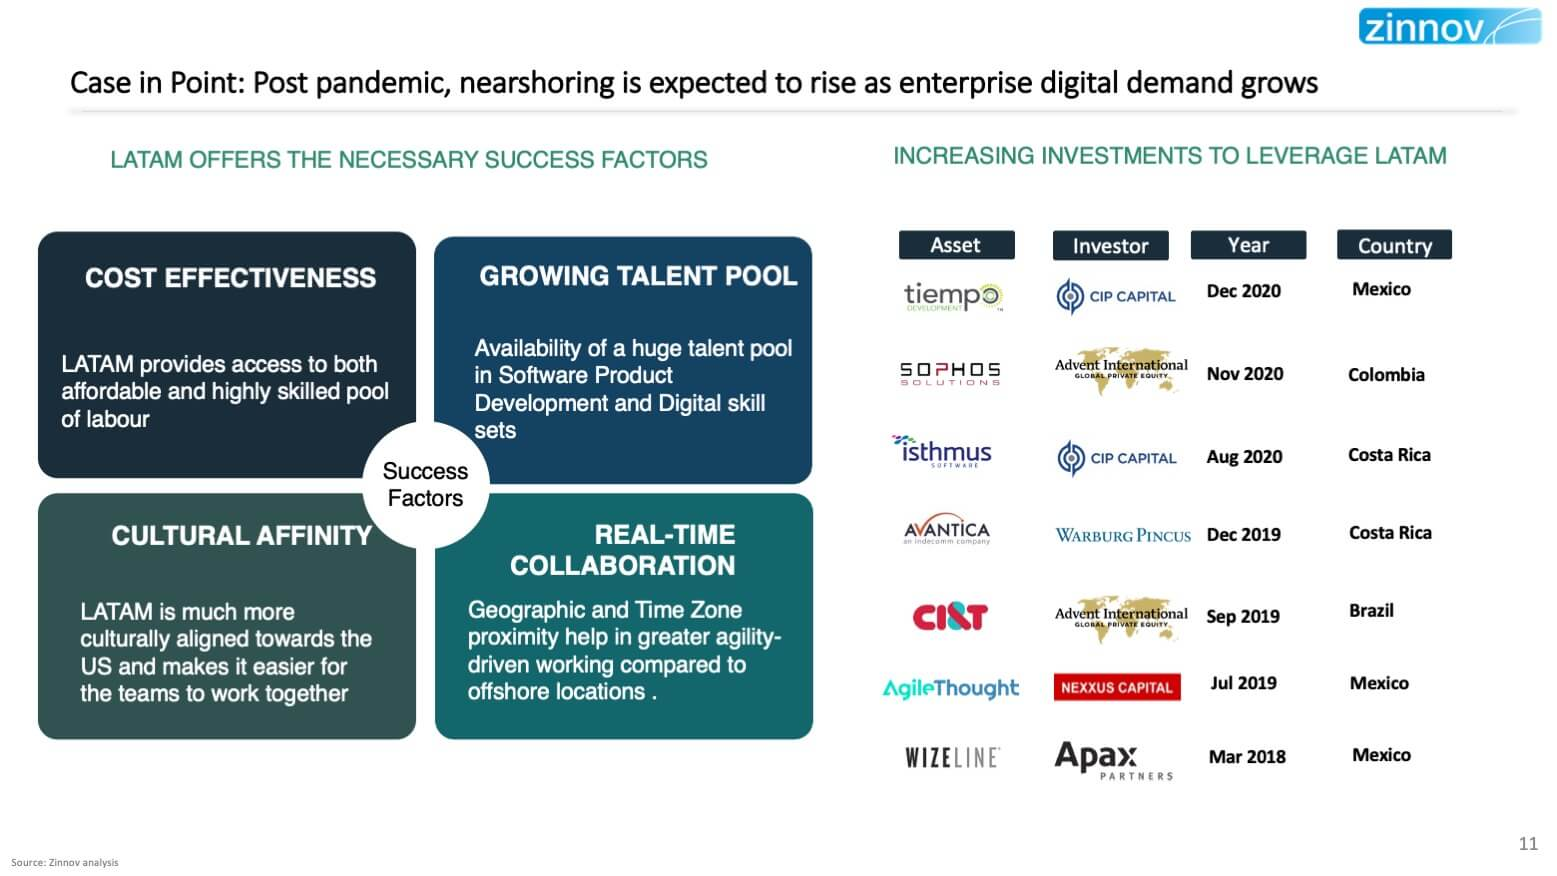 Investment And Value Creation In the New Digital Normal